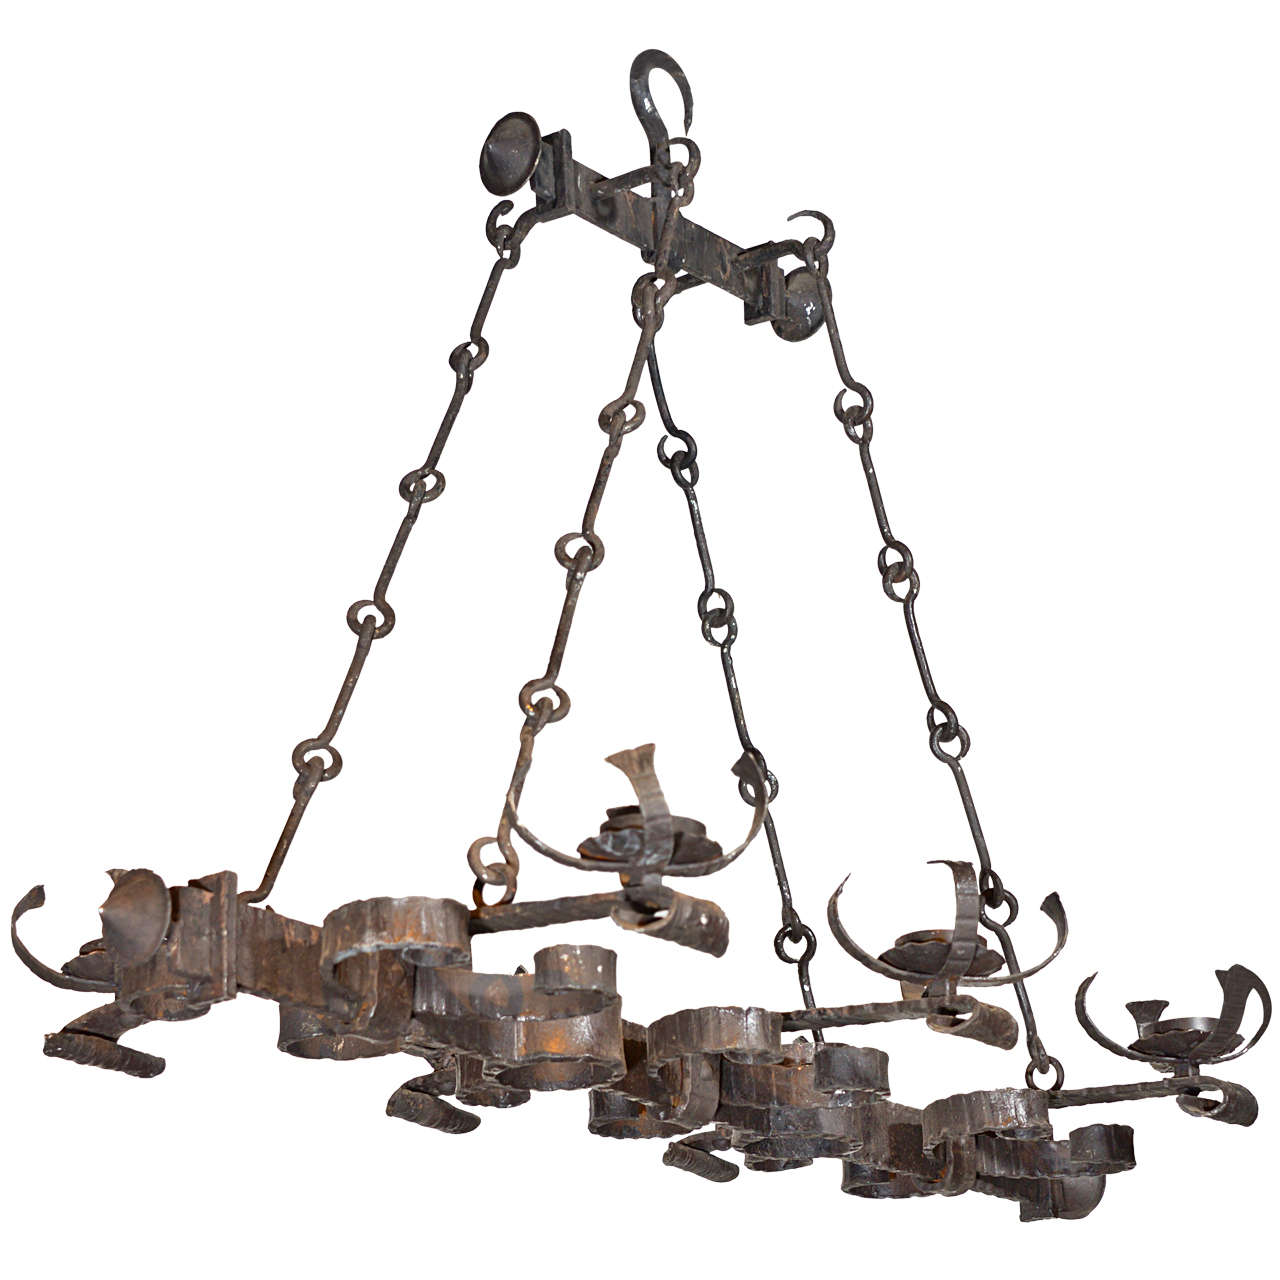 Antique French, Hand Forged, Six Light Iron Chandelier 1 - Antique French, Hand Forged, Six Light Iron Chandelier For Sale At